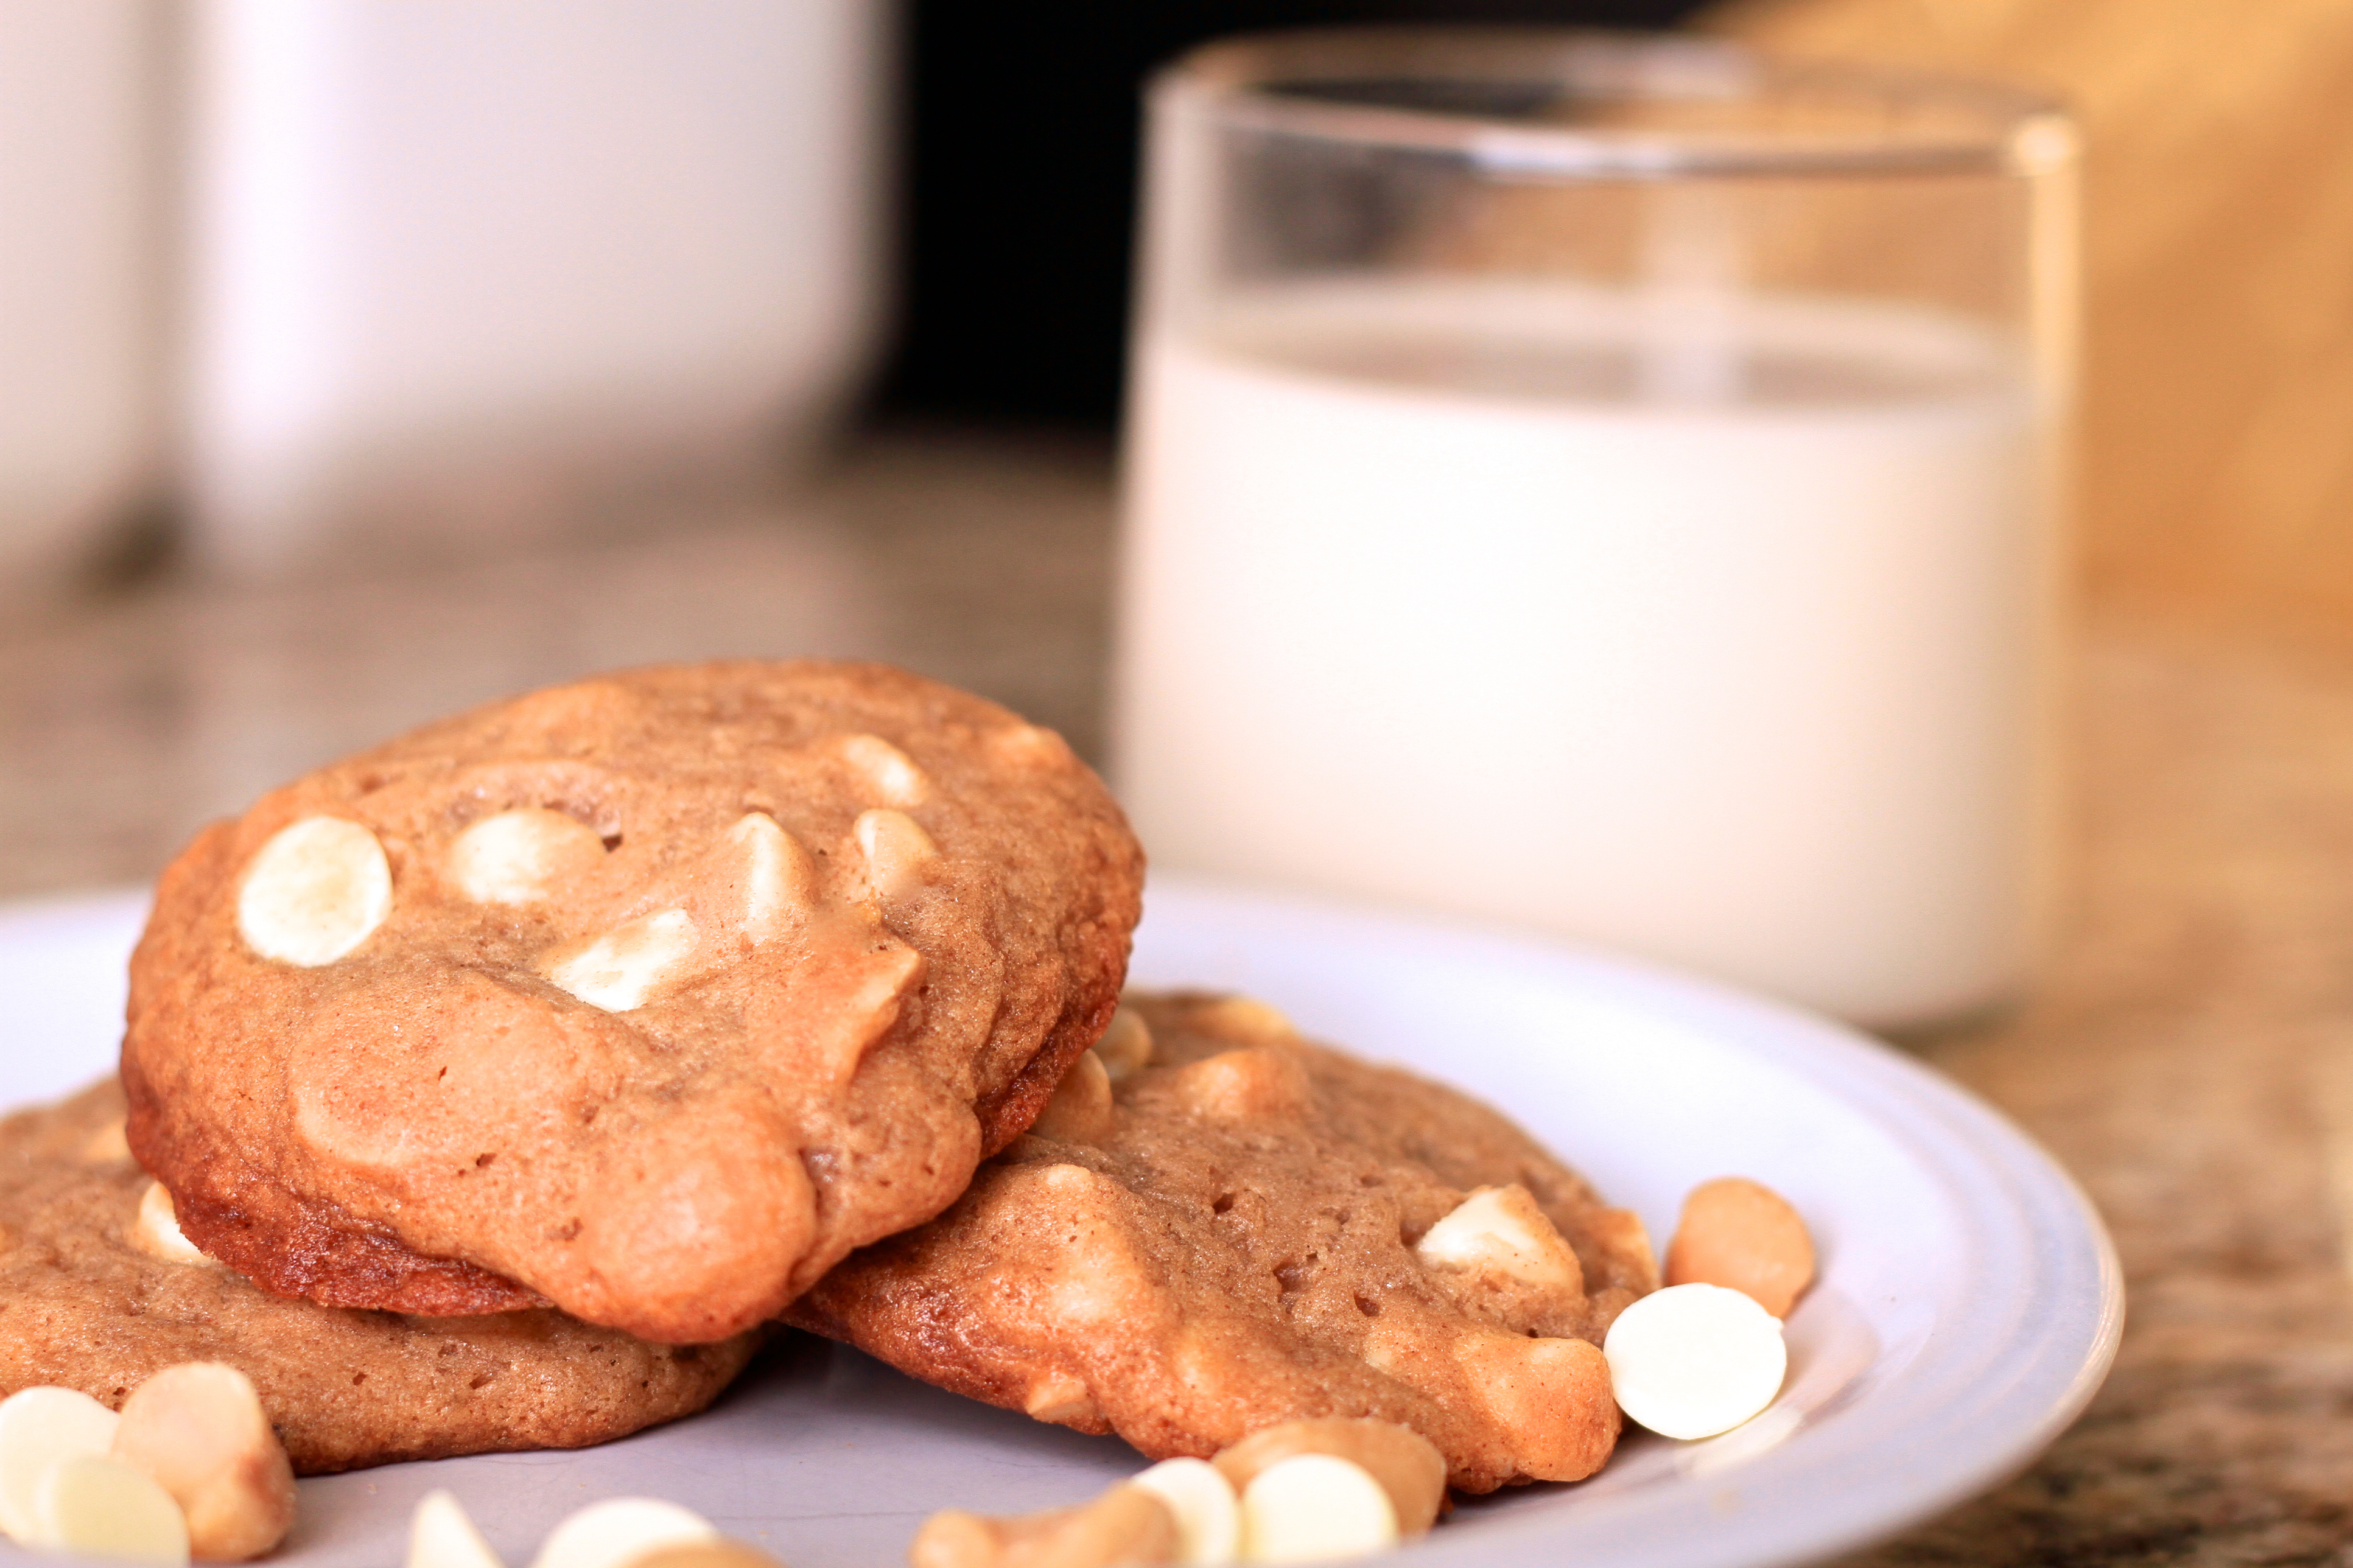 A plate of home made white chocolate and macadamia nut cookies are garnished with additional nuts and white chocolate chips and served with almond milk, These cookies are completely vegan and the milk is almond milk.